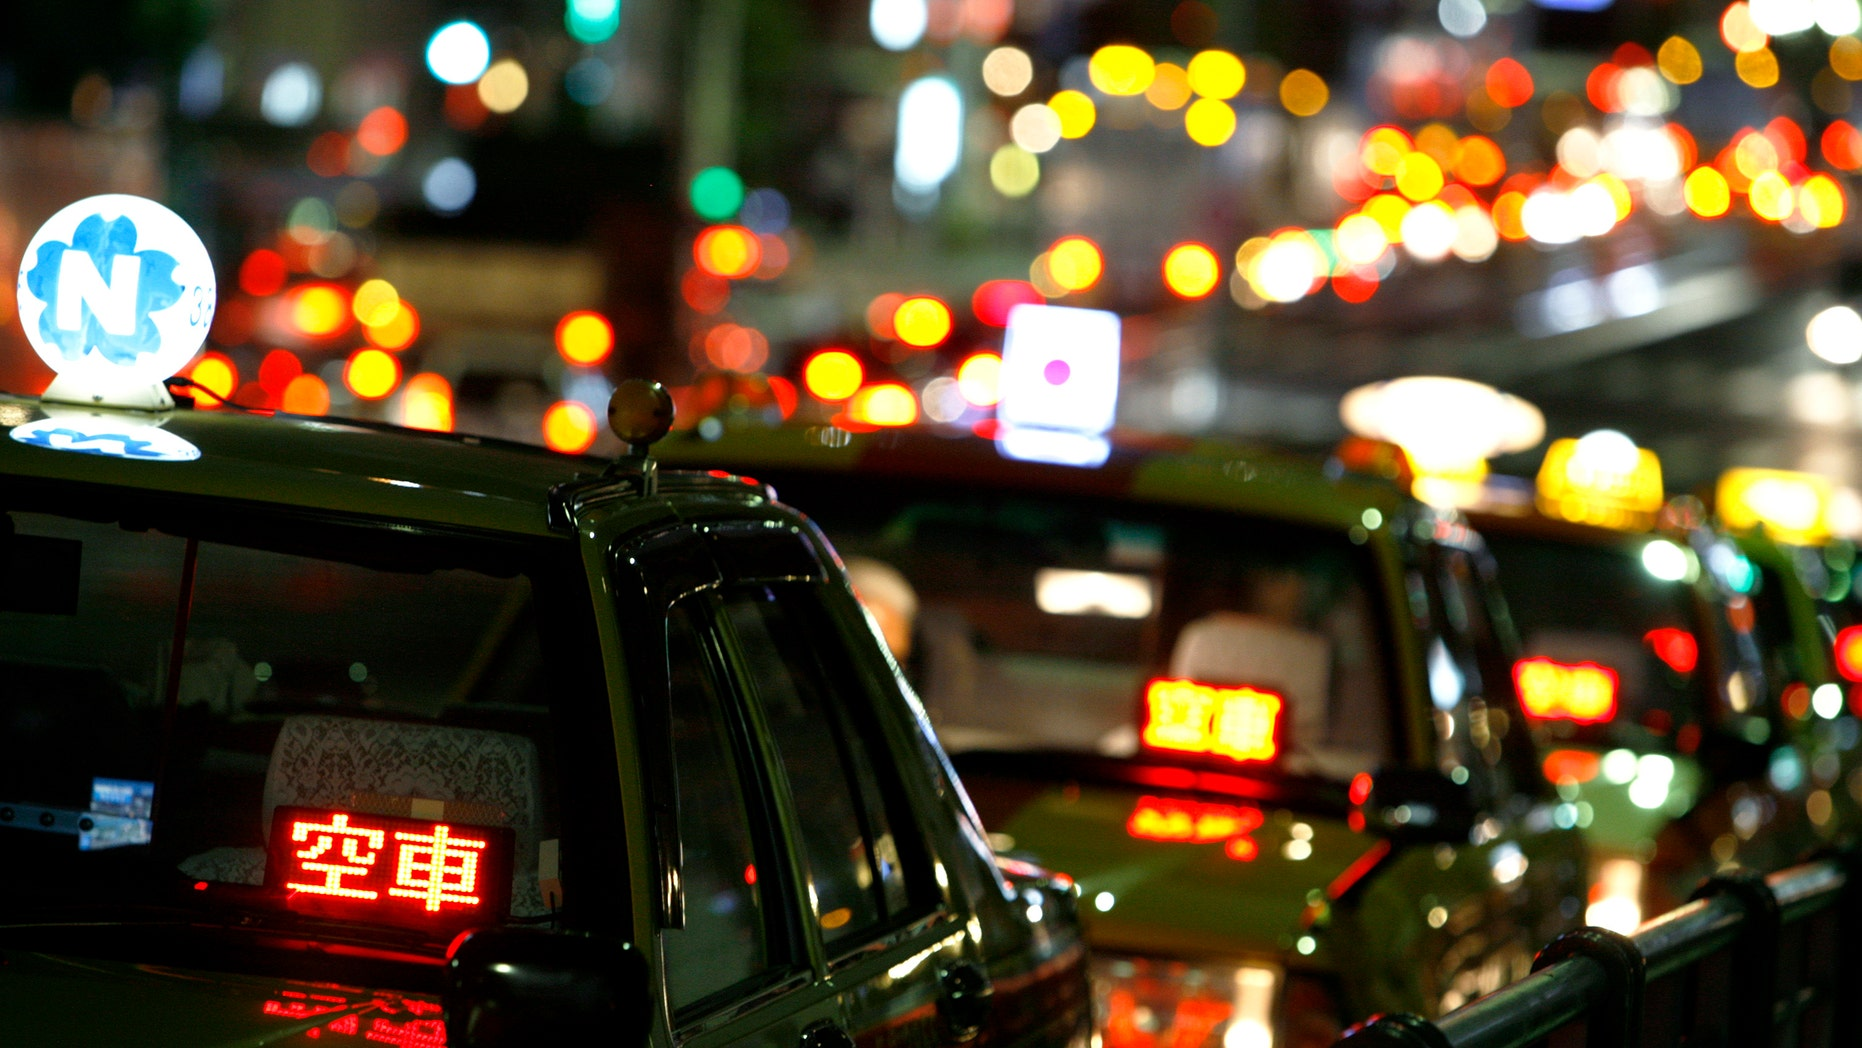 File photo - Taxis are parked as drivers wait for customers on a road in Tokyo Aug. 3, 2009. (REUTERS/Stringer)